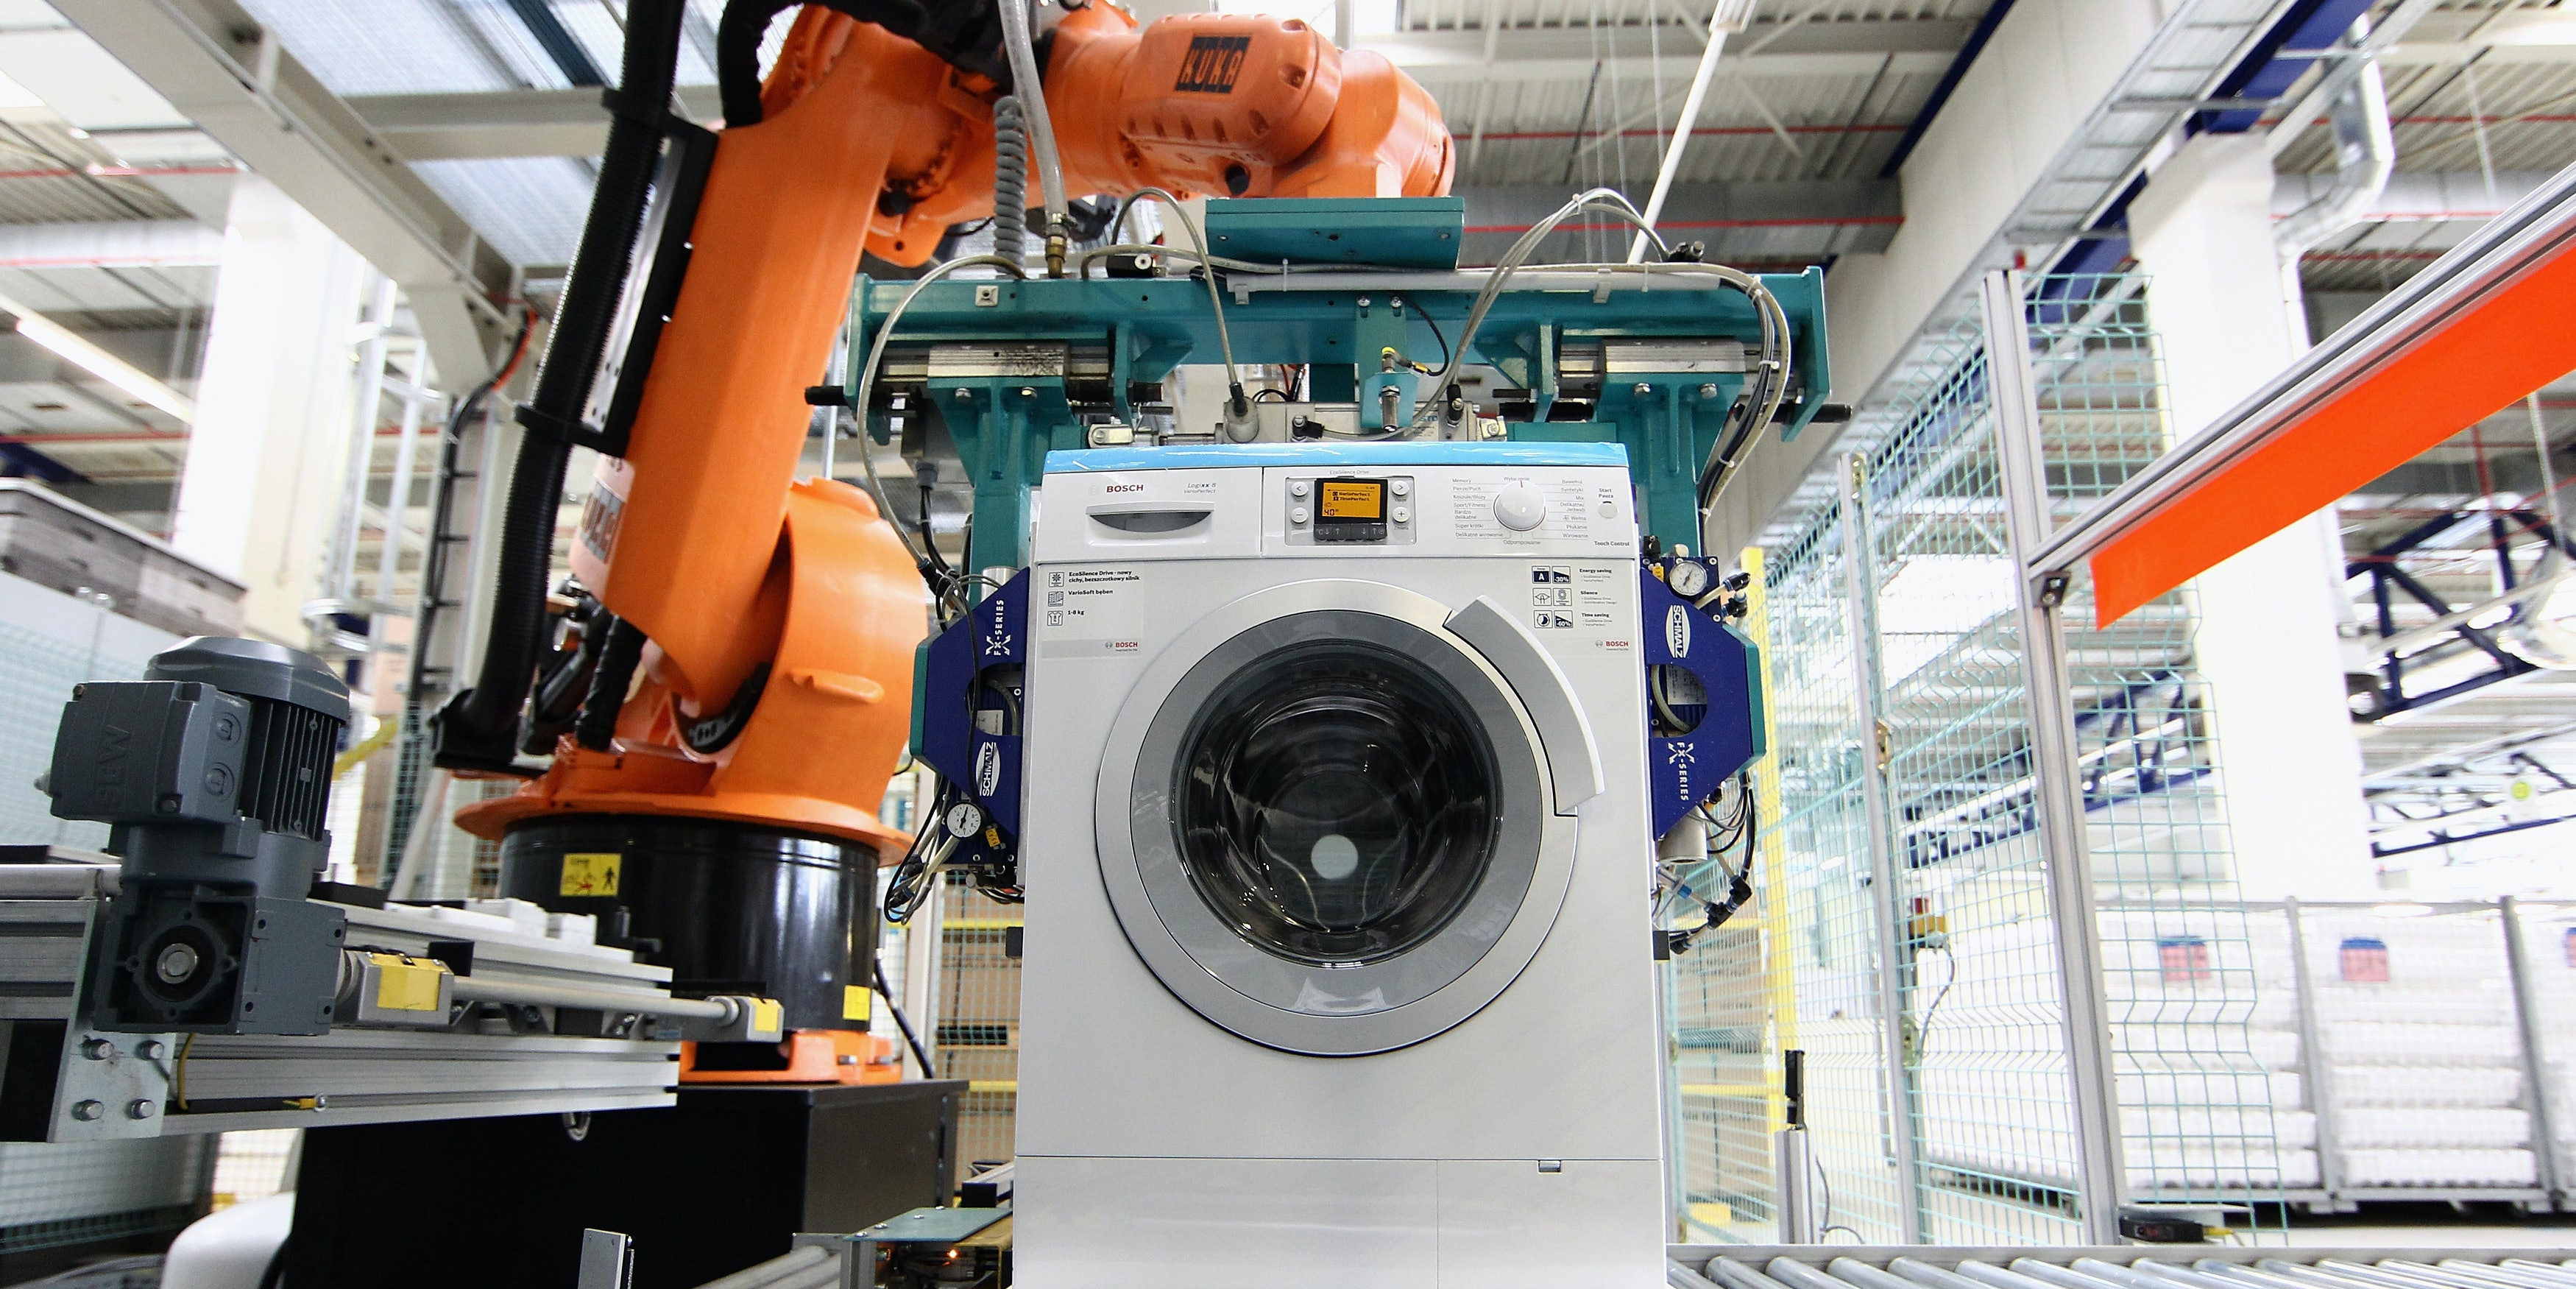 A robot assembles Washing Machines at the BSH Bosch Siemens Hausgeraetewerk Nauen consumer appliances factory, the world's third-largest appliance maker, in Nauen, Germany.